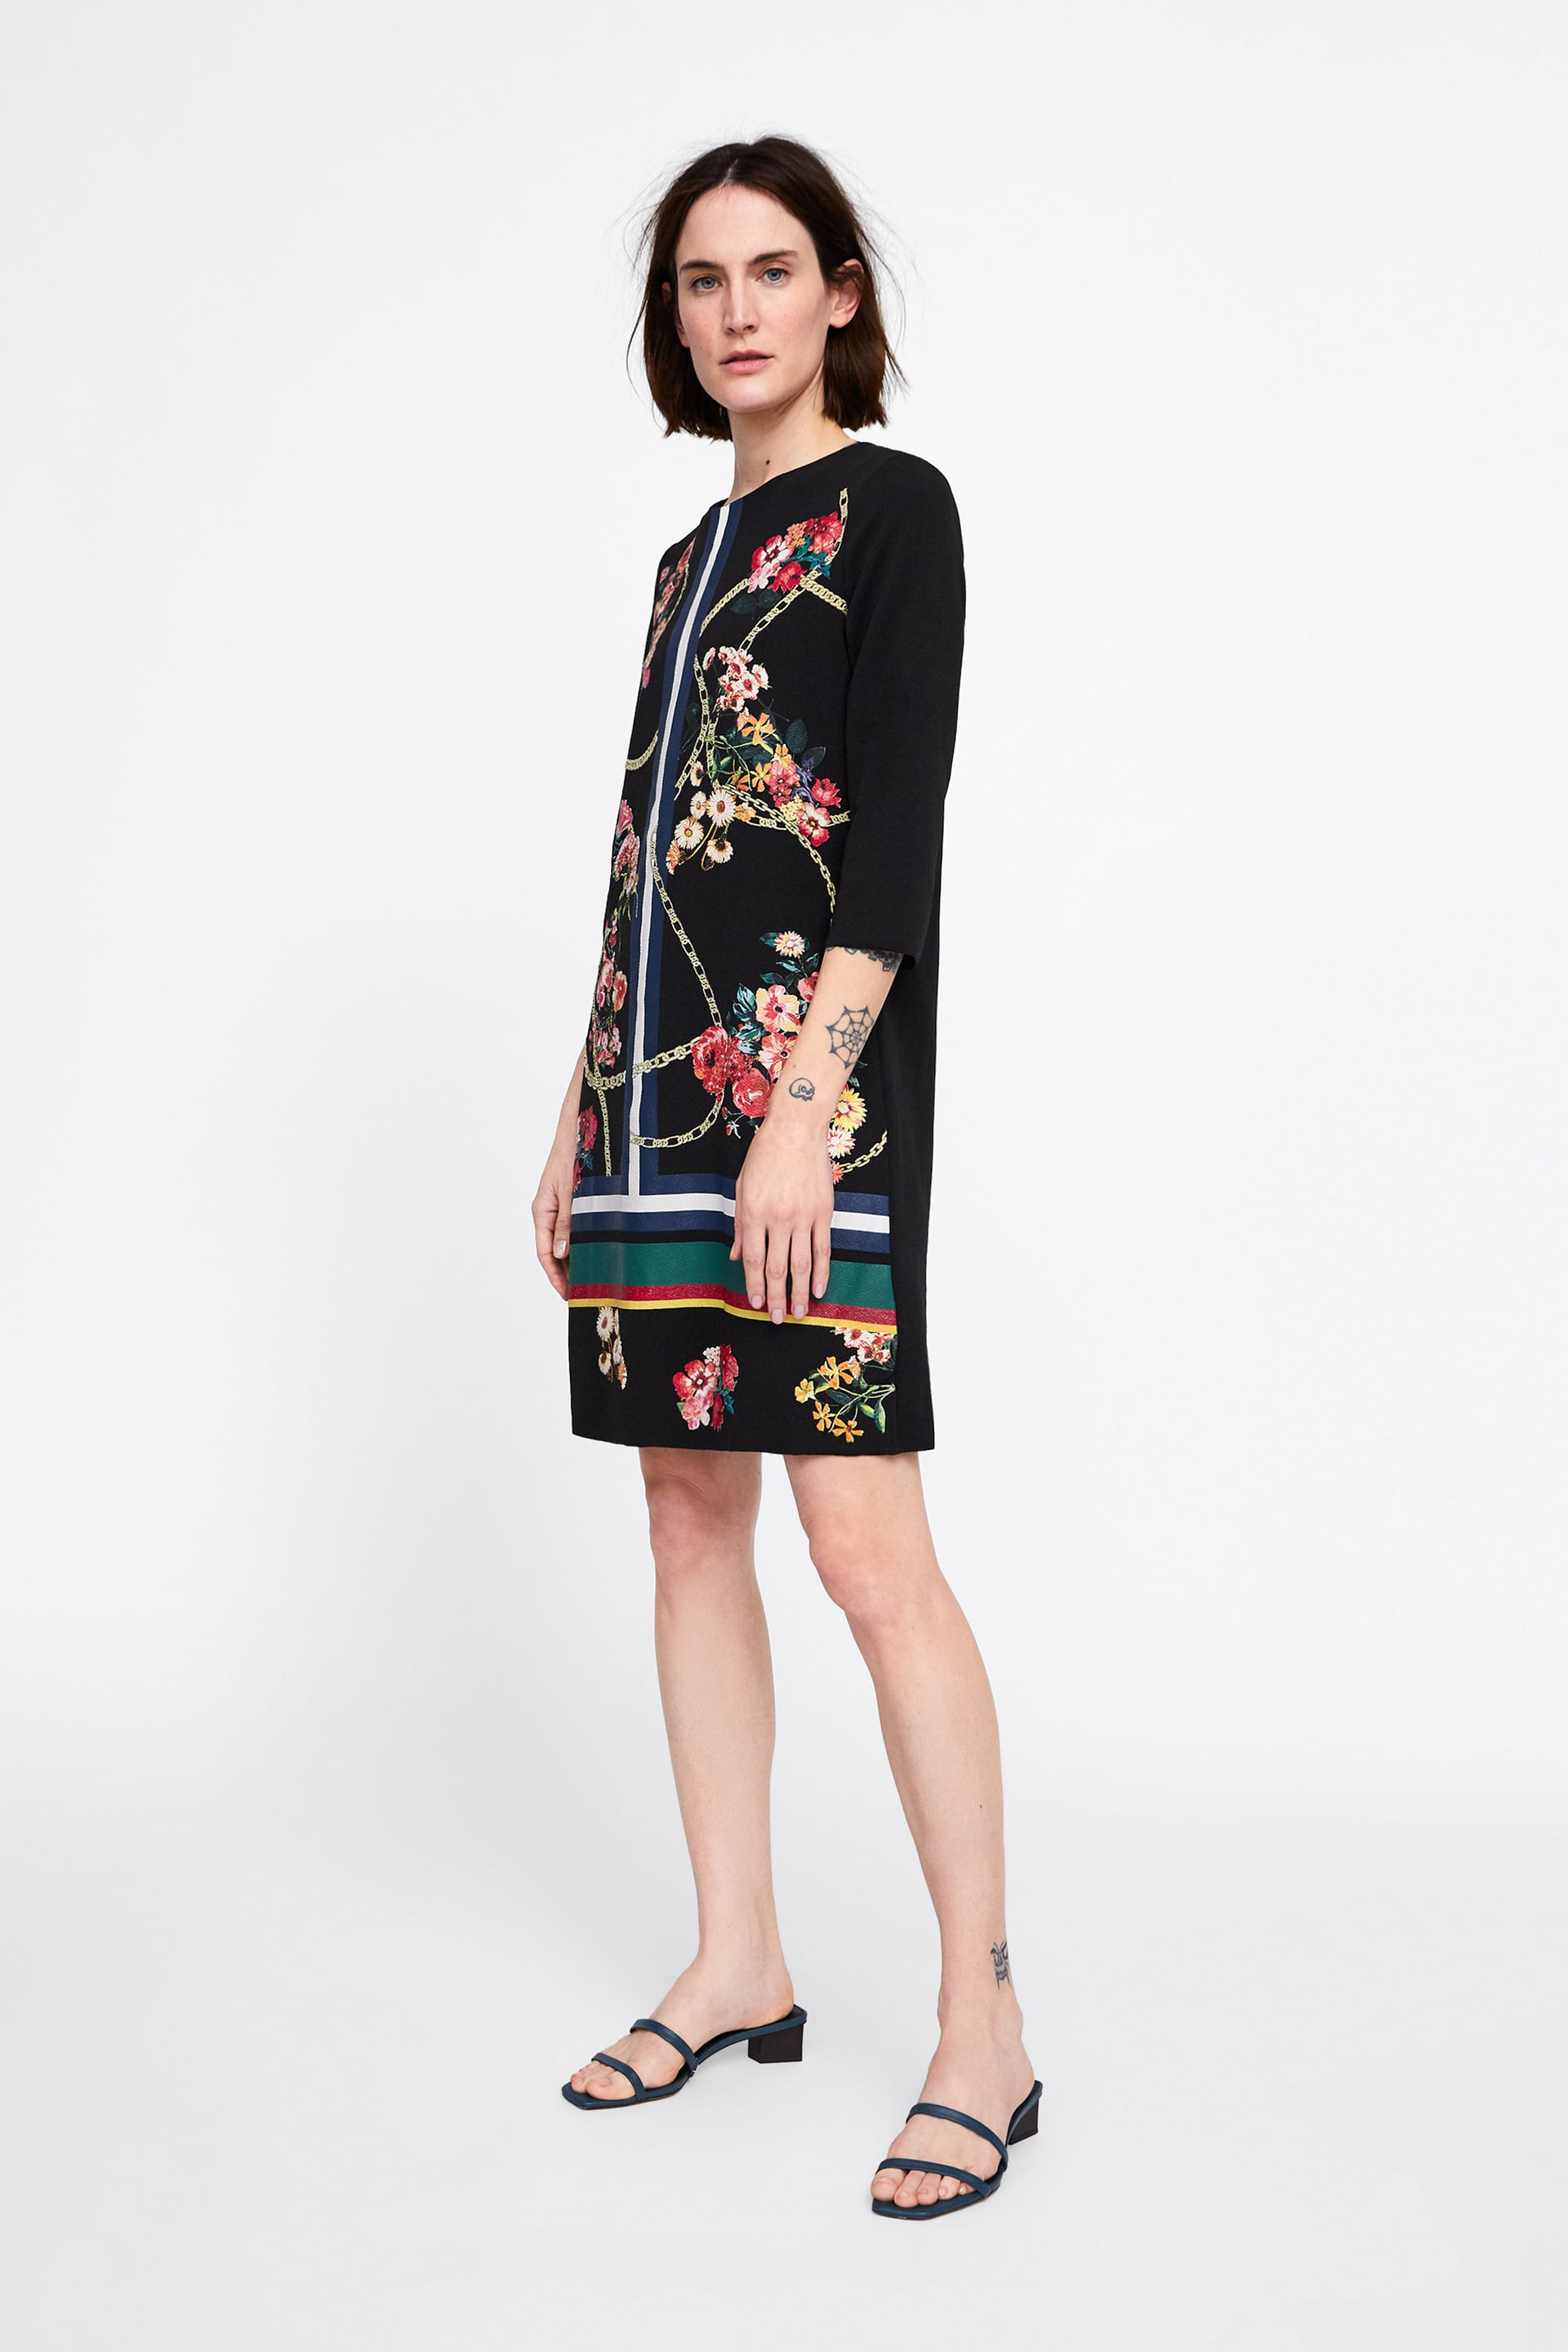 5cade681b8 Zara Black Long Midi Floral Embroidered Dress